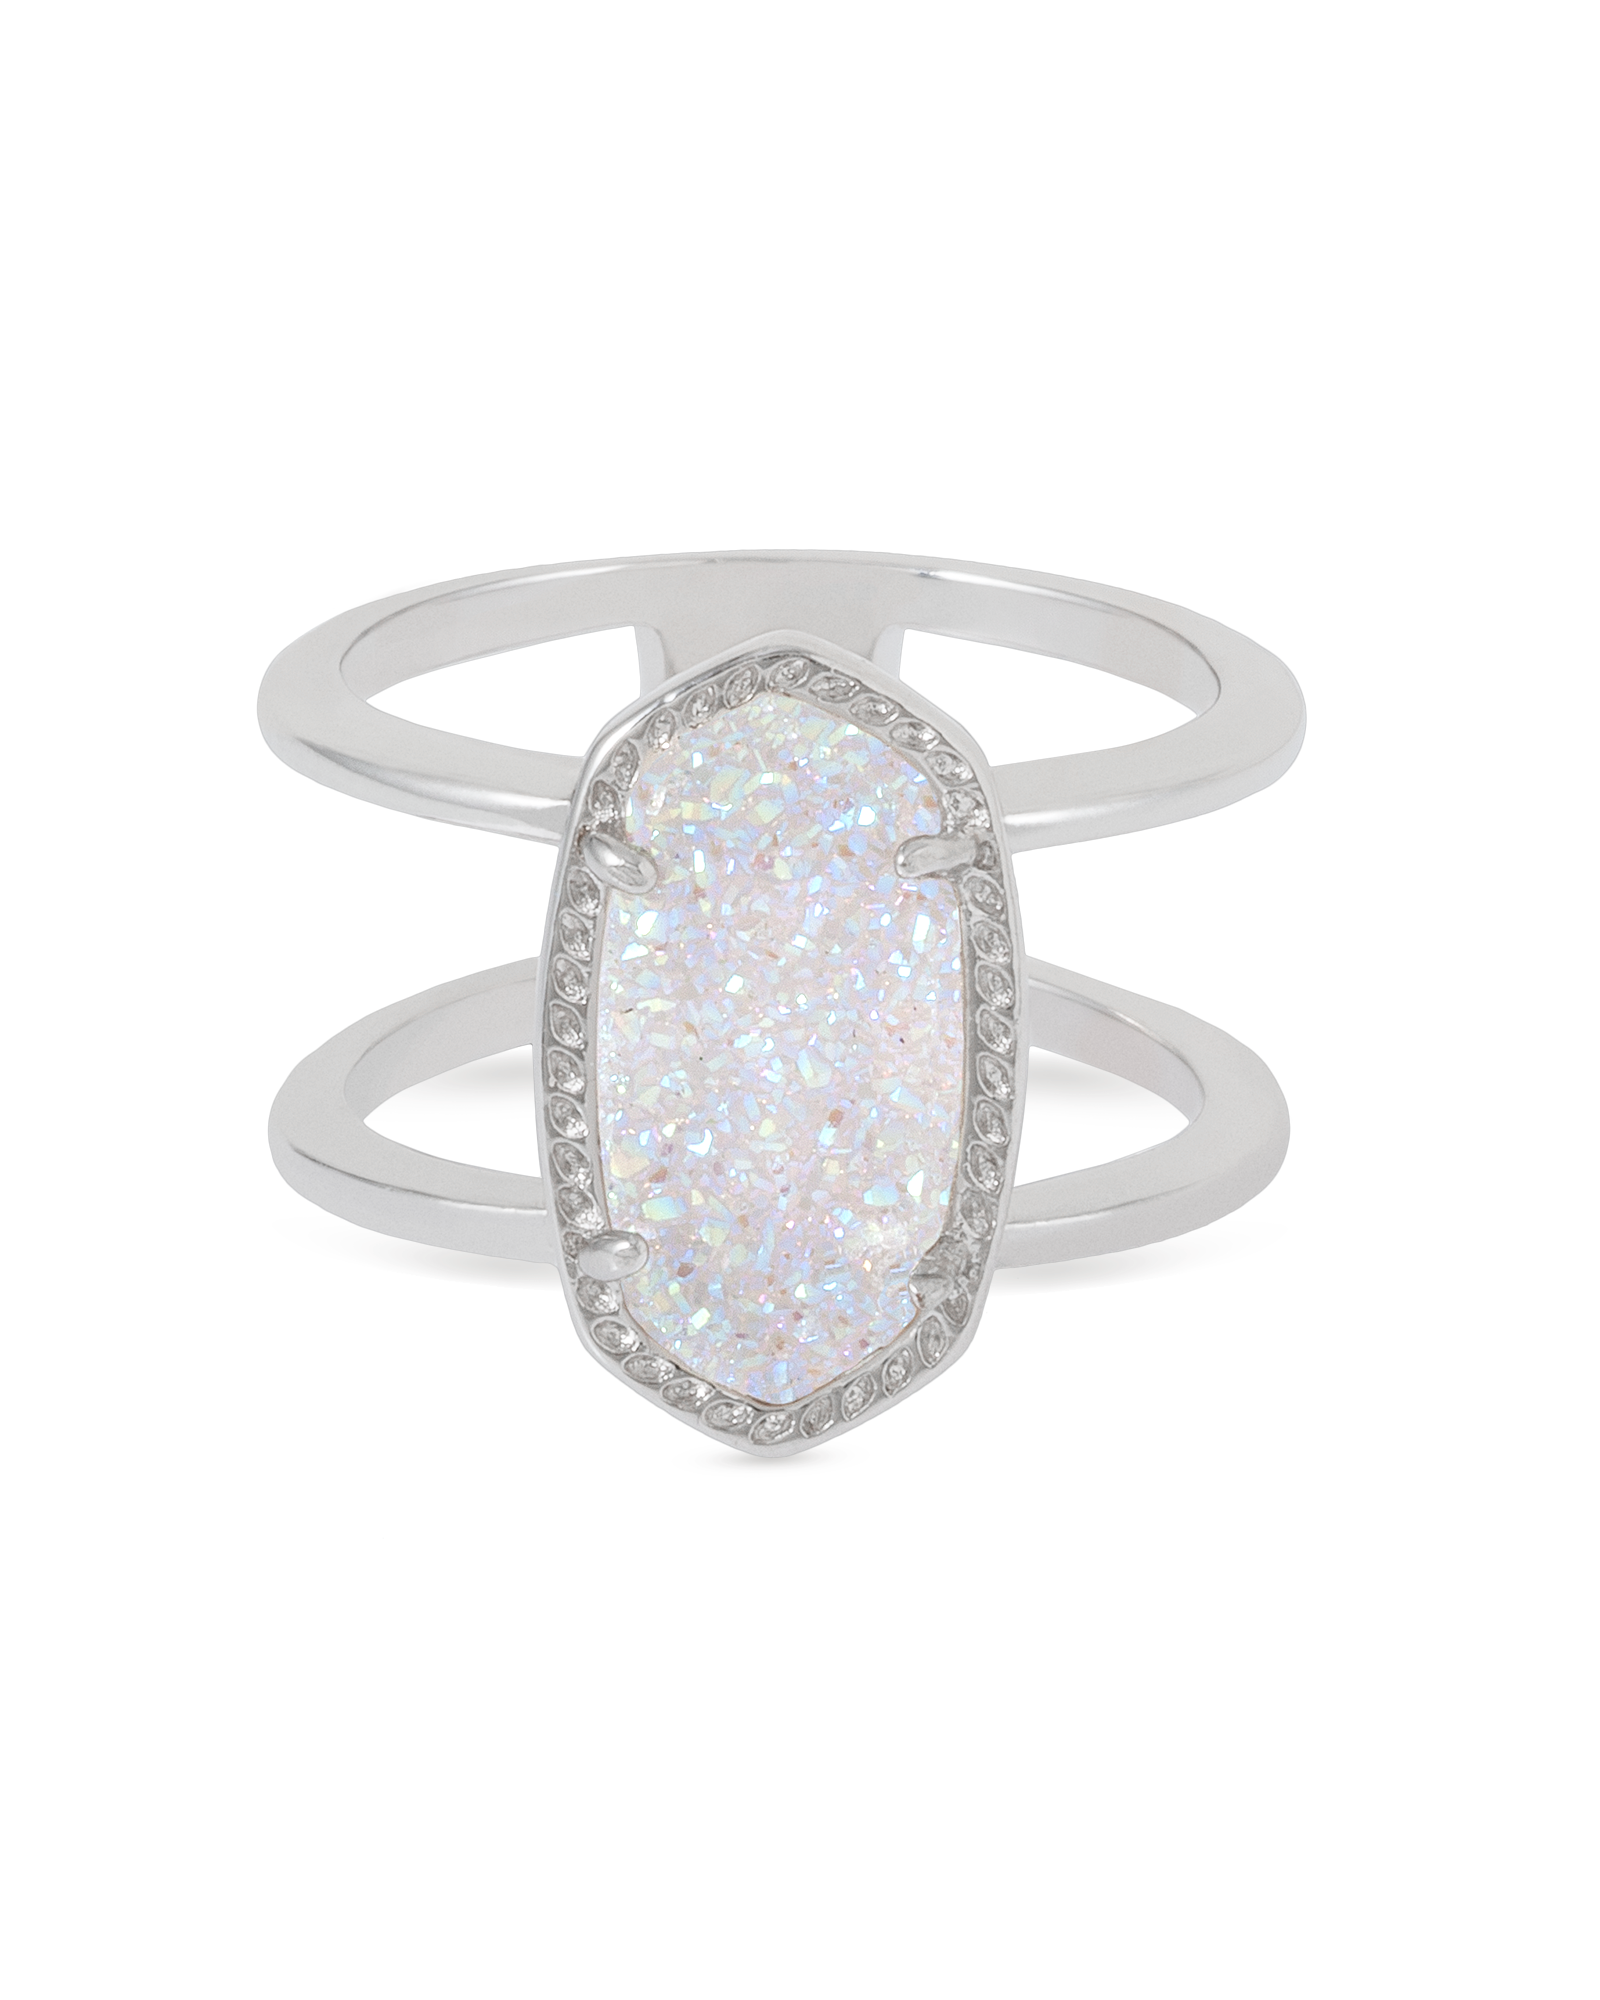 Elyse Silver Ring in Iridescent Drusy Size 6 Kendra Scott